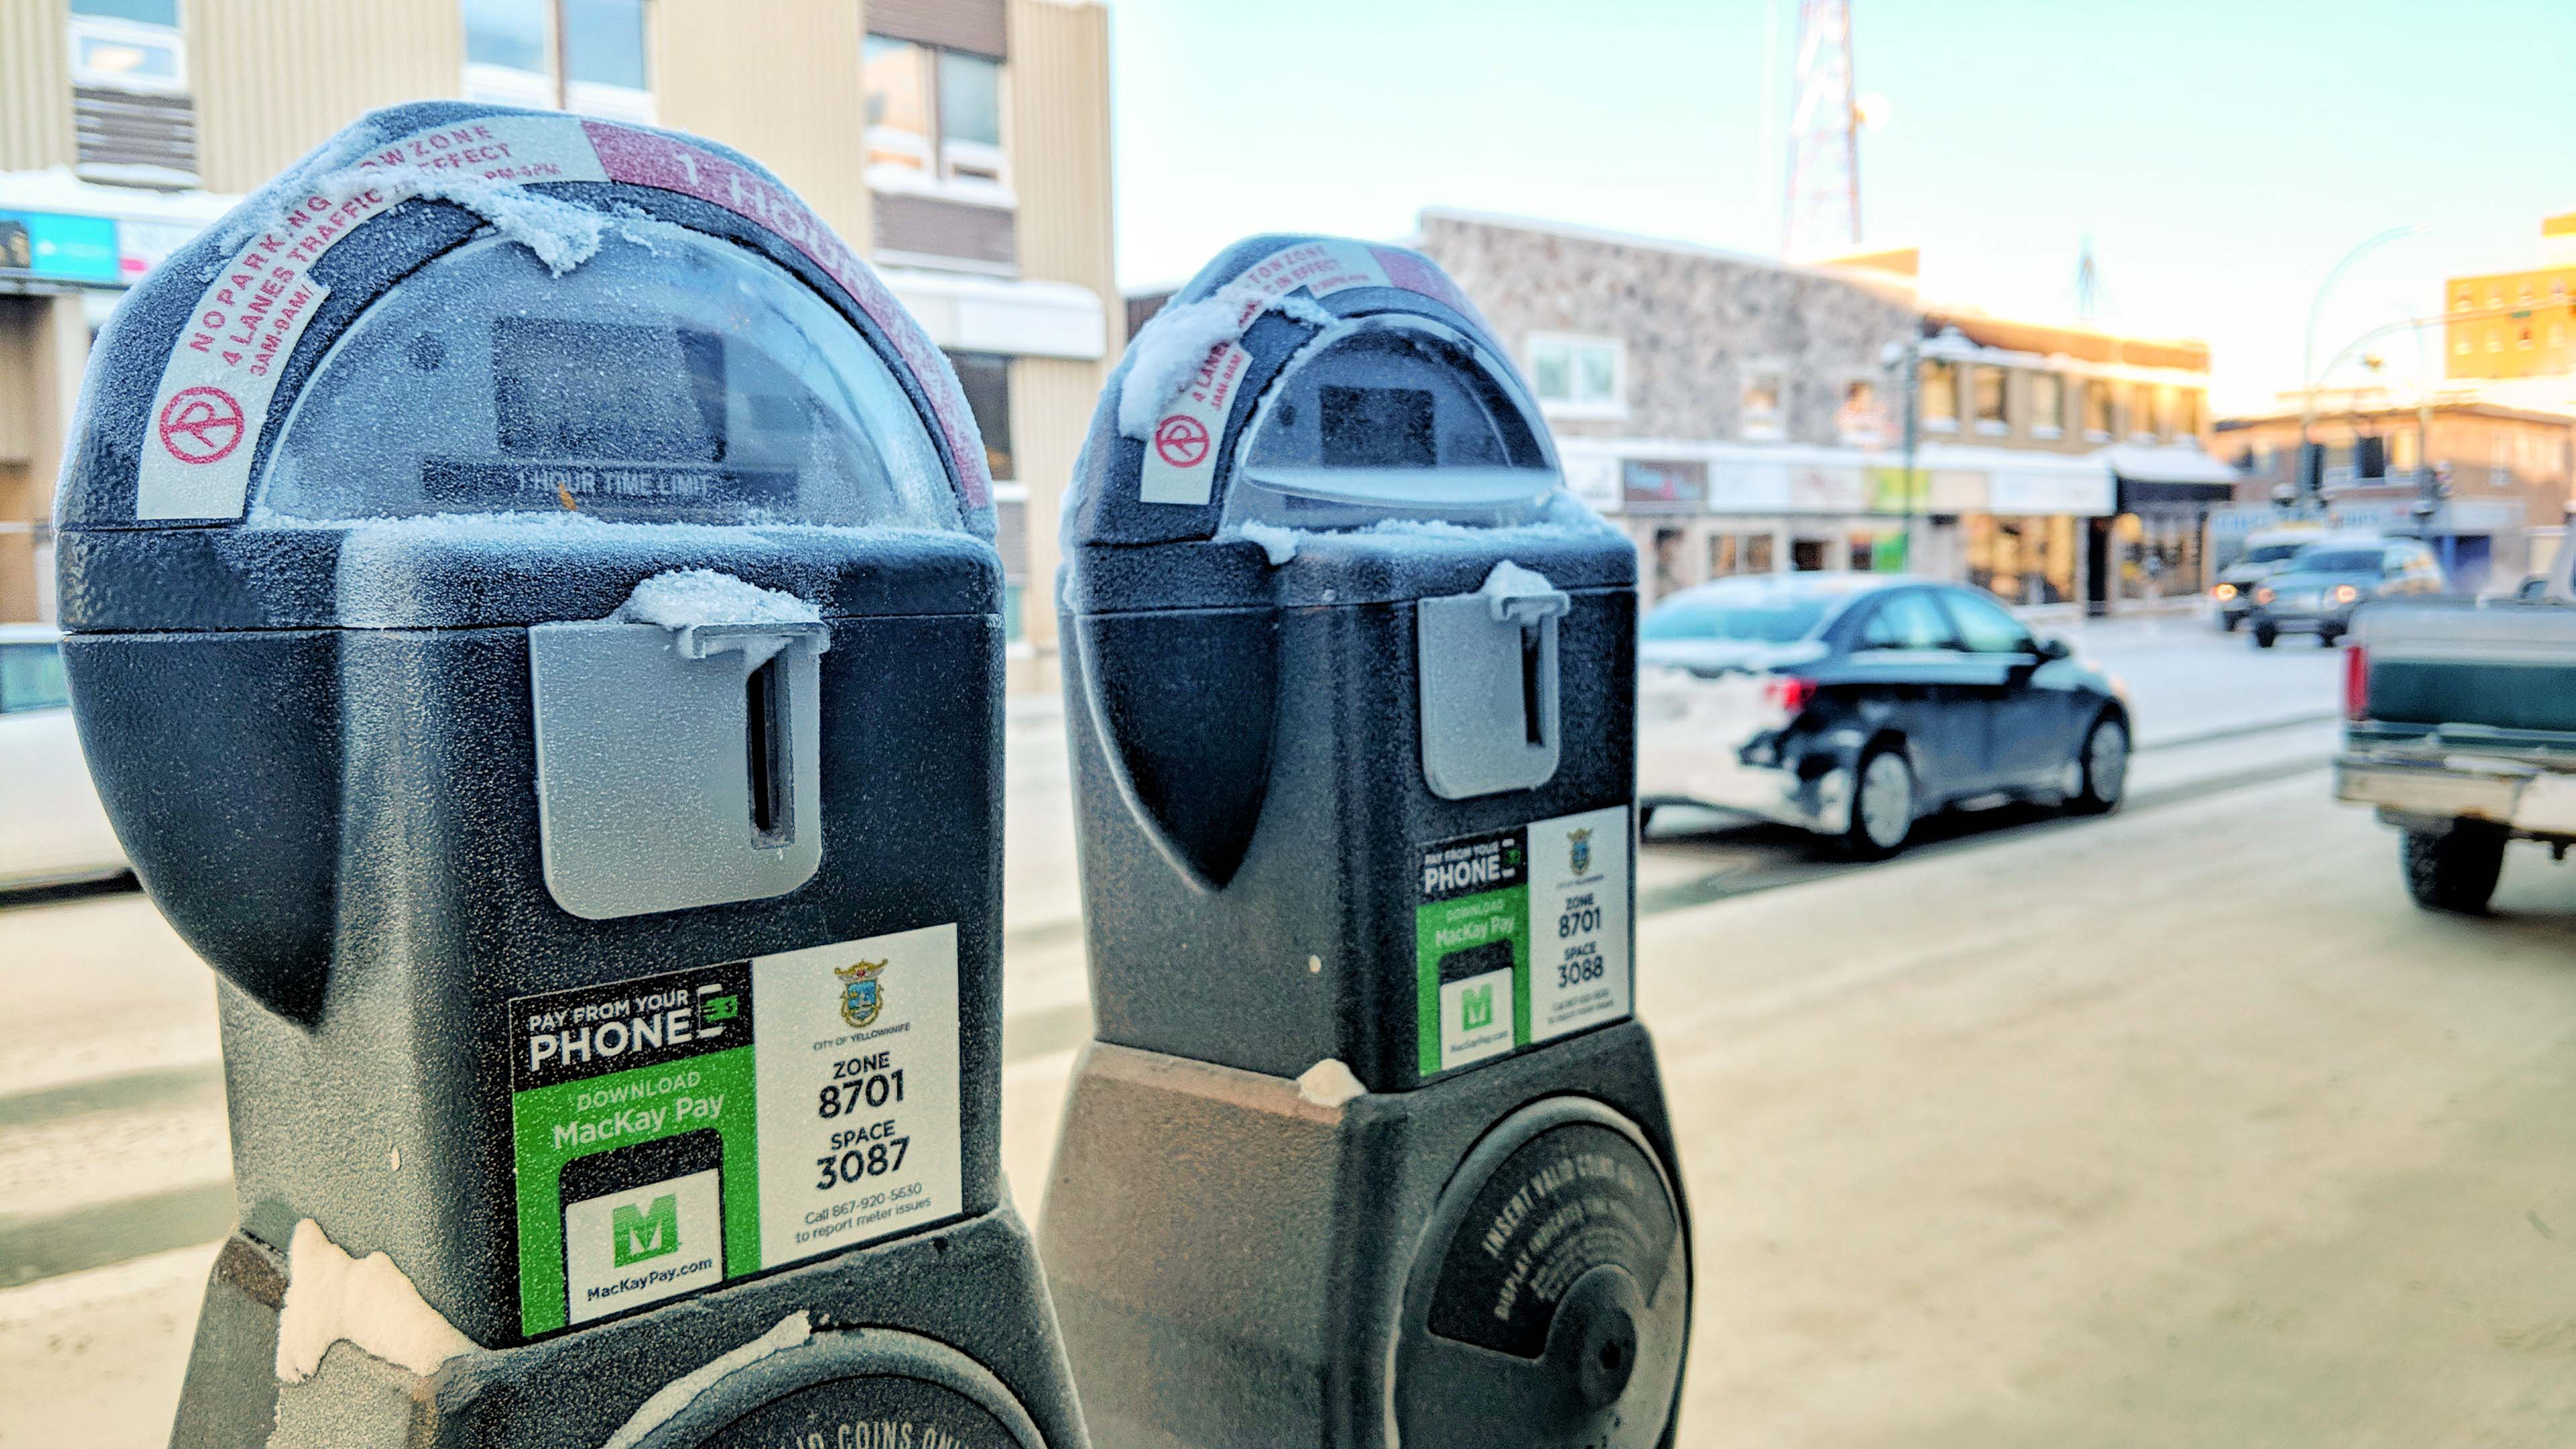 Parking meters in downtown Yellowknife on January 9, 2018